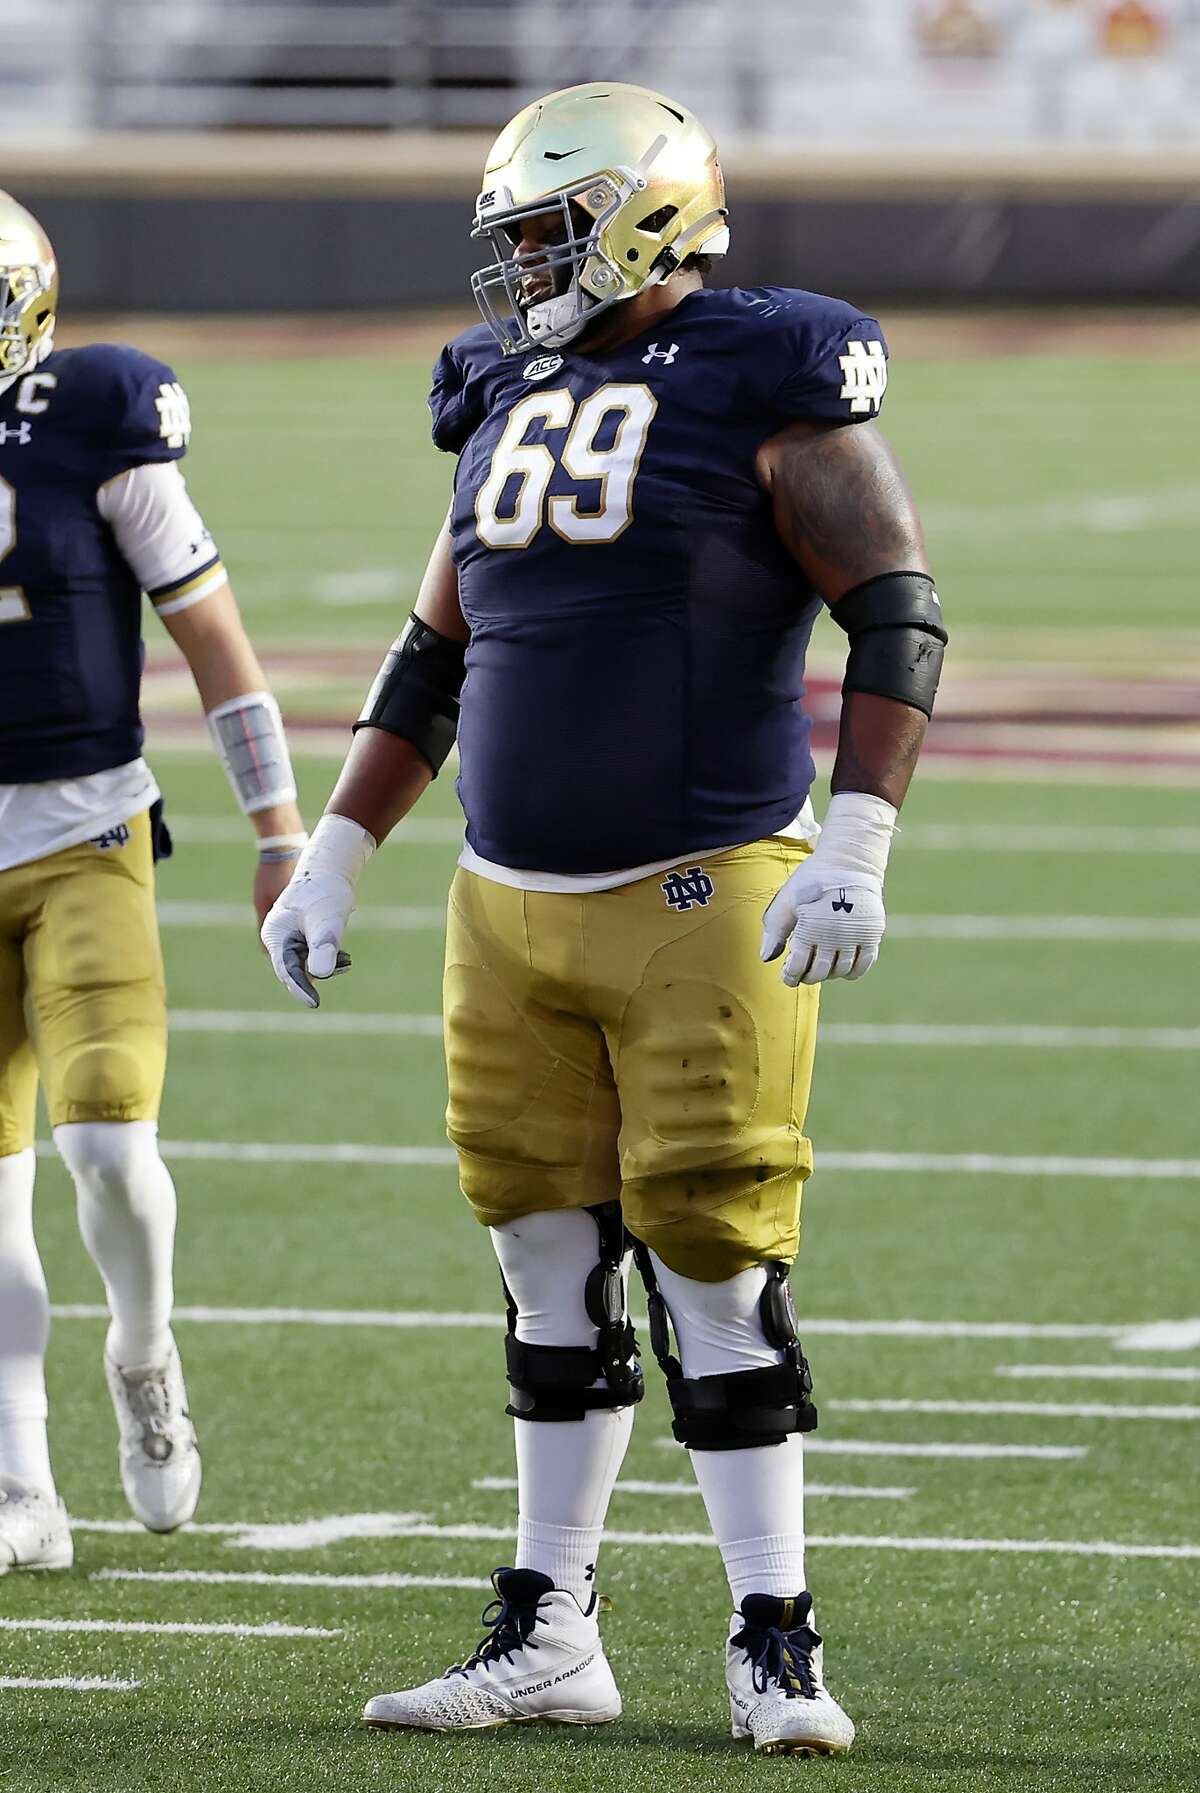 CHESTNUT HILL, MA - NOVEMBER 14: Notre Dame offensive lineman Aaron Banks (69) during a game between the Boston College Eagles and the Notre Dame Fighting Irish on November 14, 2020, at Alumni Stadium in Chestnut Hill, Massachusetts. (Photo by Fred Kfoury III/Icon Sportswire via Getty Images)